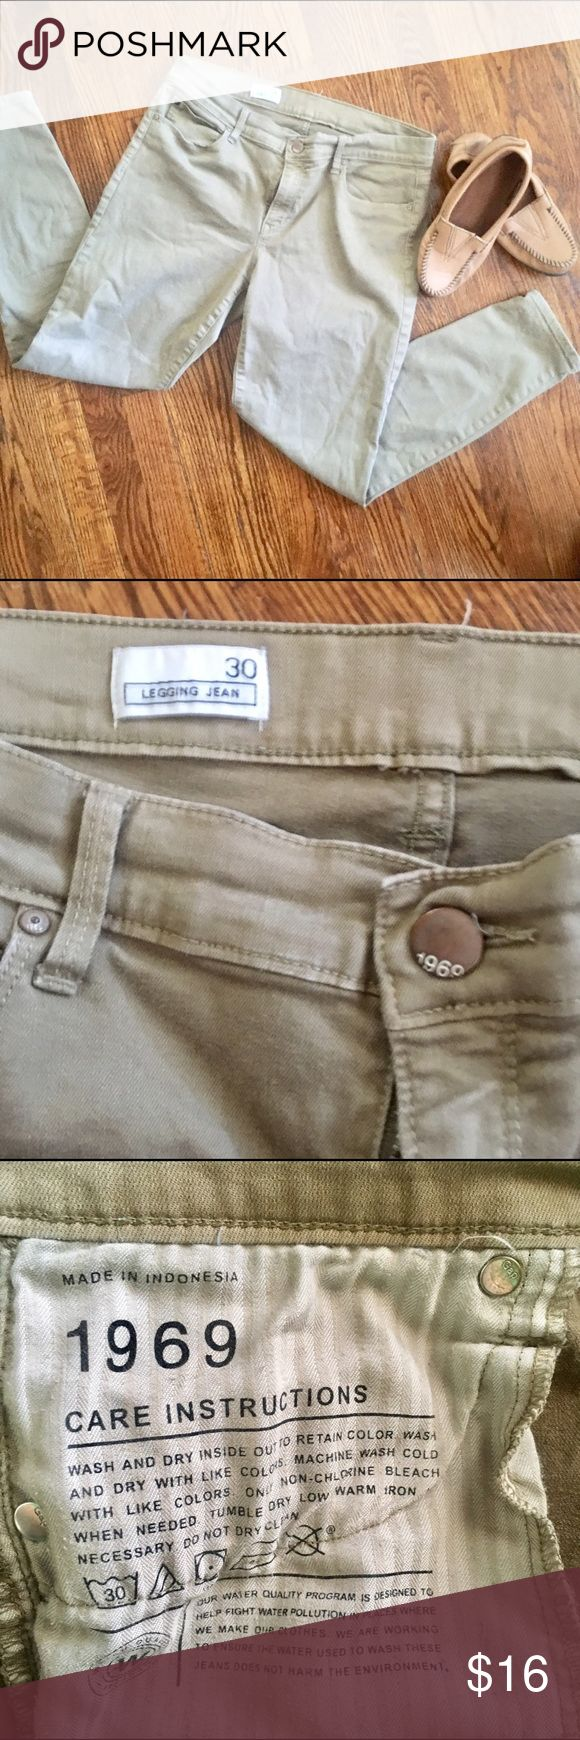 GAP 1969 legging jean jegging khaki skinny pant 30 These khaki skinnies are classic Gap. Color is tan khaki. Excellent pre-loved condition. GAP Jeans Skinny